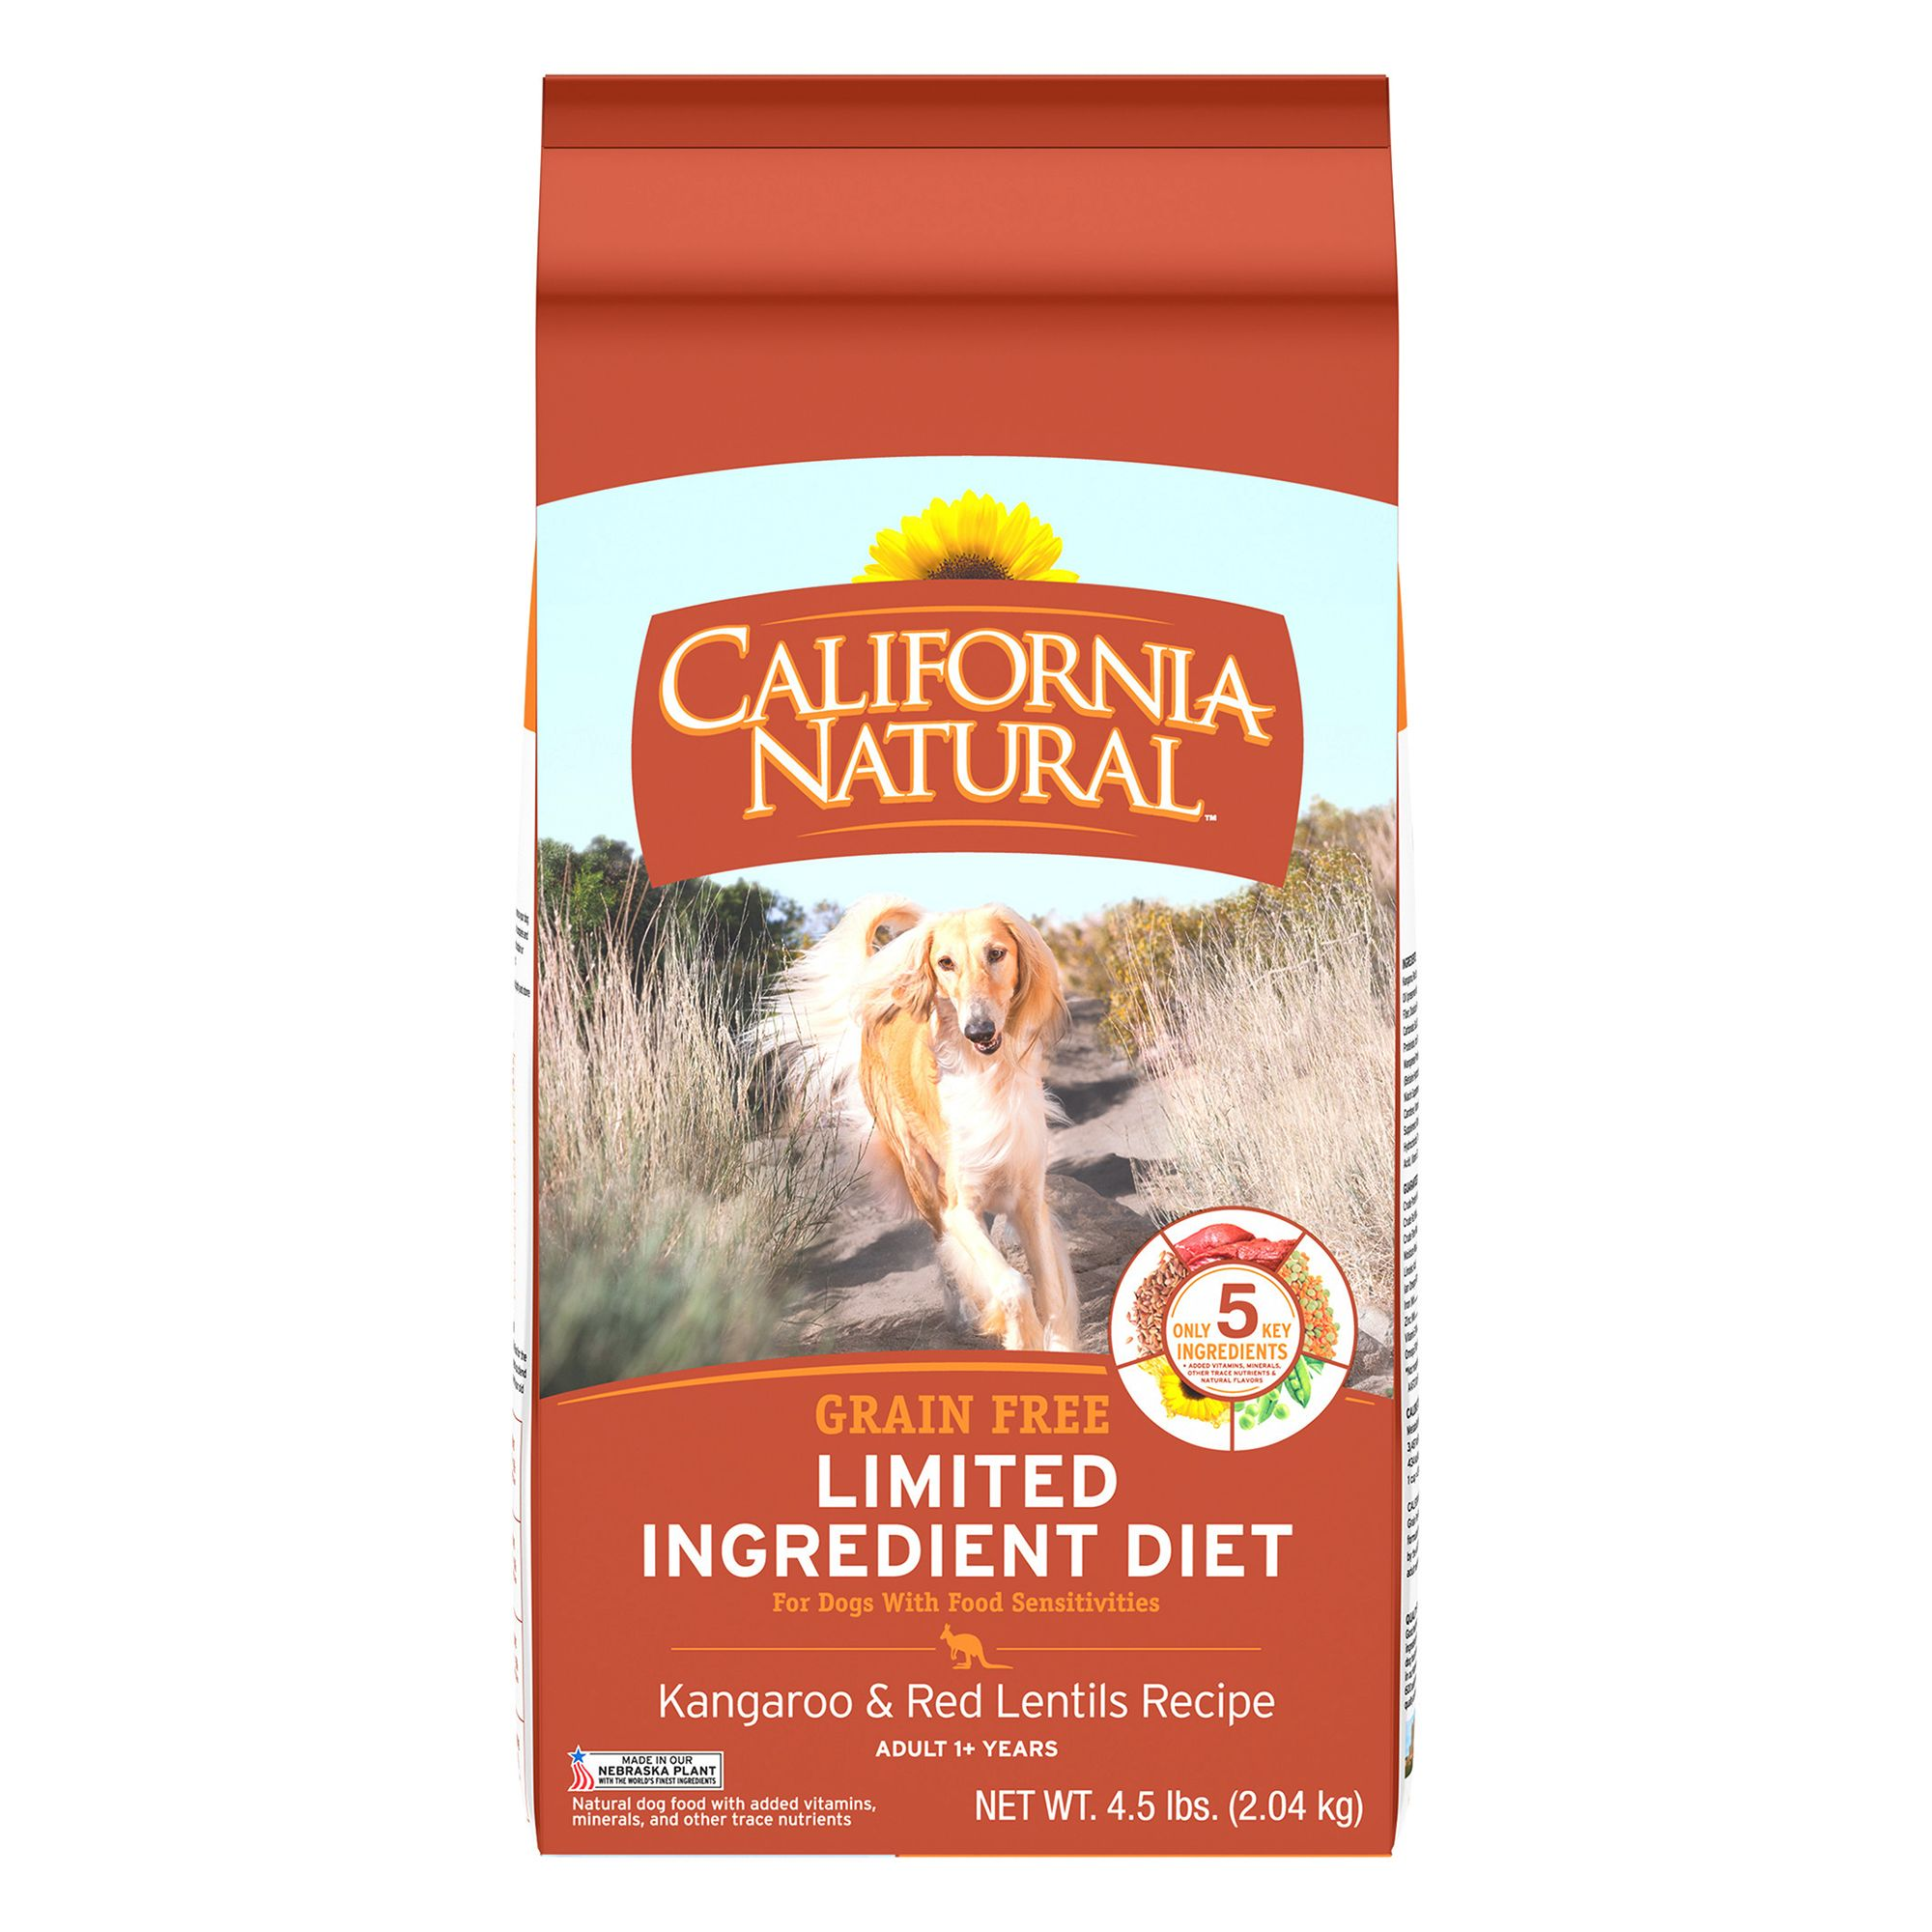 California Natural Limited Ingredient Diet Dog Food Natural Grain Free Kangaroo And Red Lentils Size 4.5 Lb